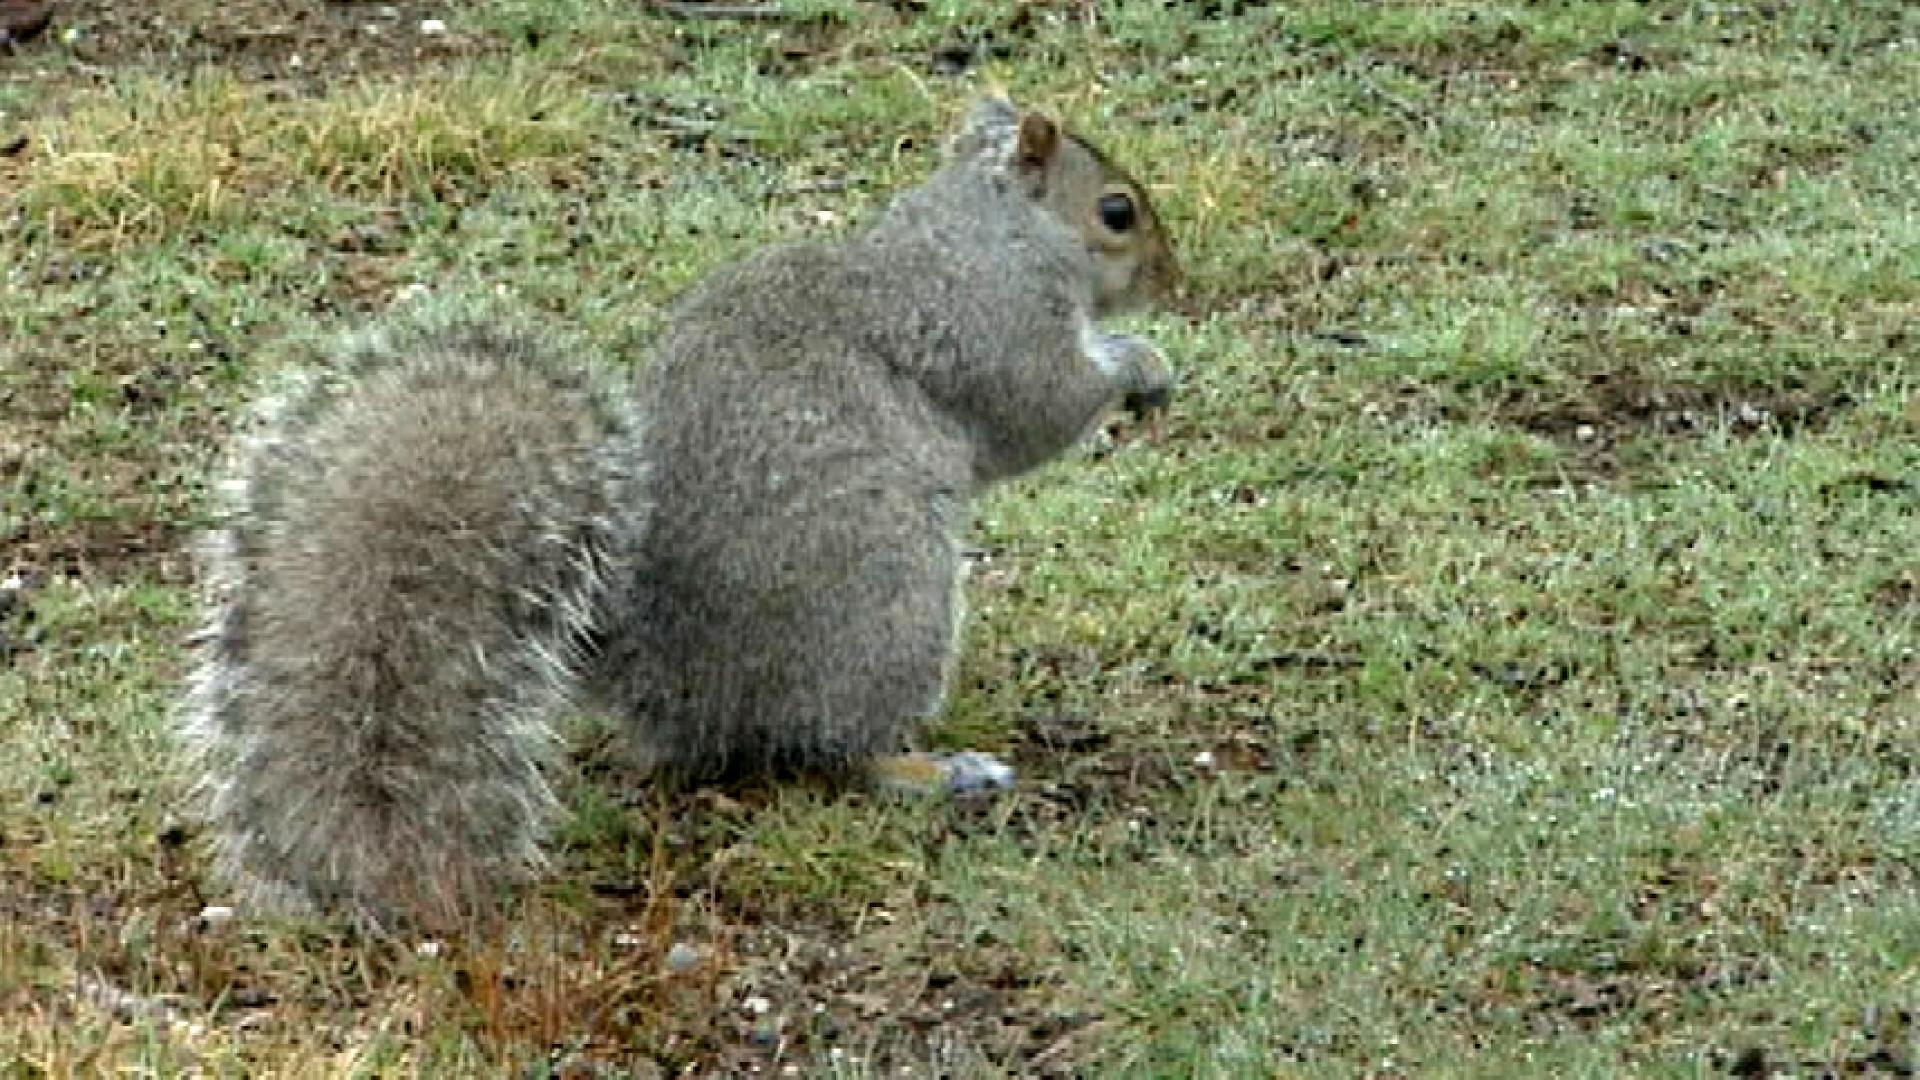 1-eyed squirrel with Instagram account is returned to nature